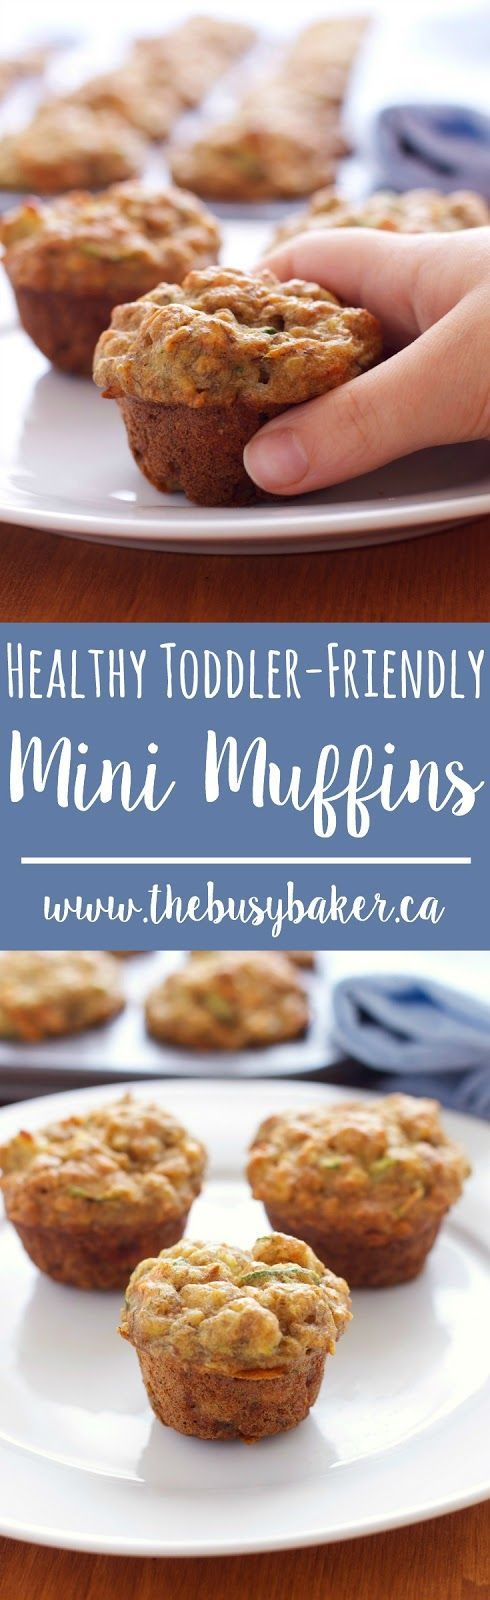 These Healthy Toddler-Friendly Mini Muffins are the perfect snack for kids! Recipe from thebusybaker.ca!